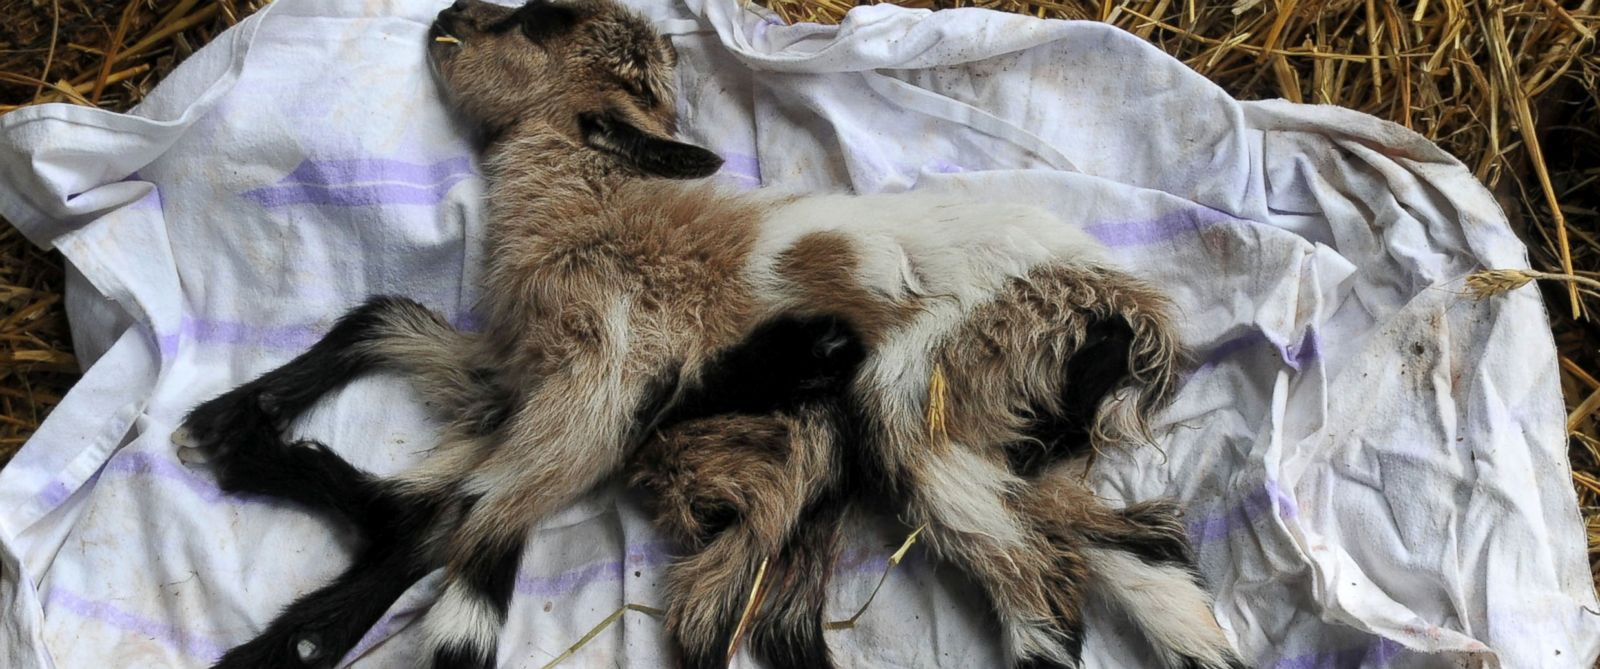 PHOTO: A goat with eight legs has been born on a farm in Kutjevo, Croatia.